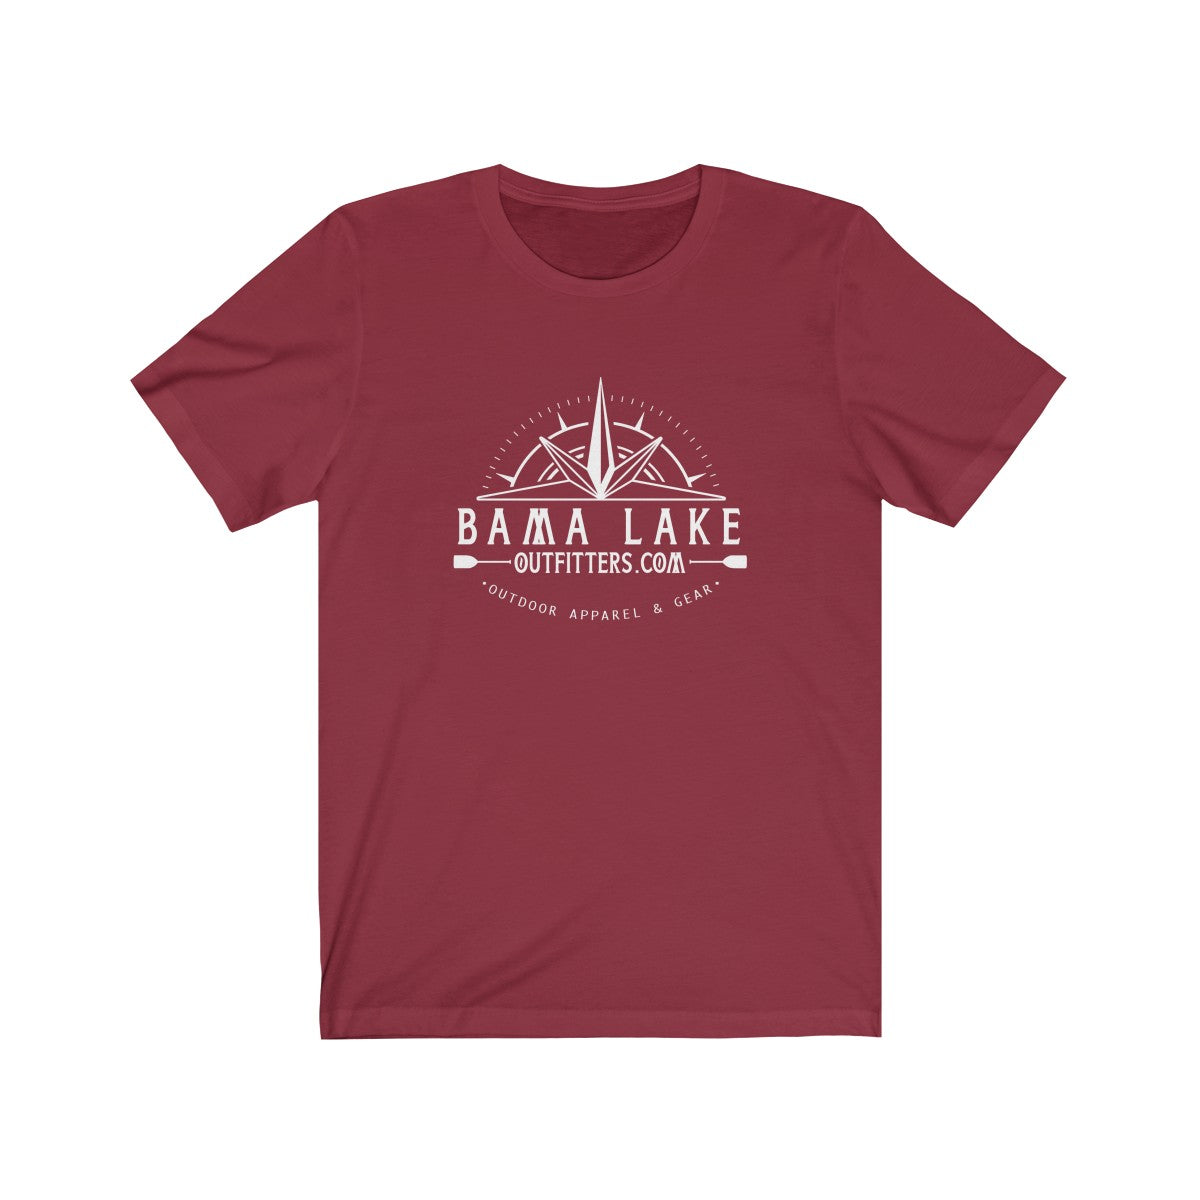 Bama Lake Outfitters Unisex Jersey Short Sleeve Tee